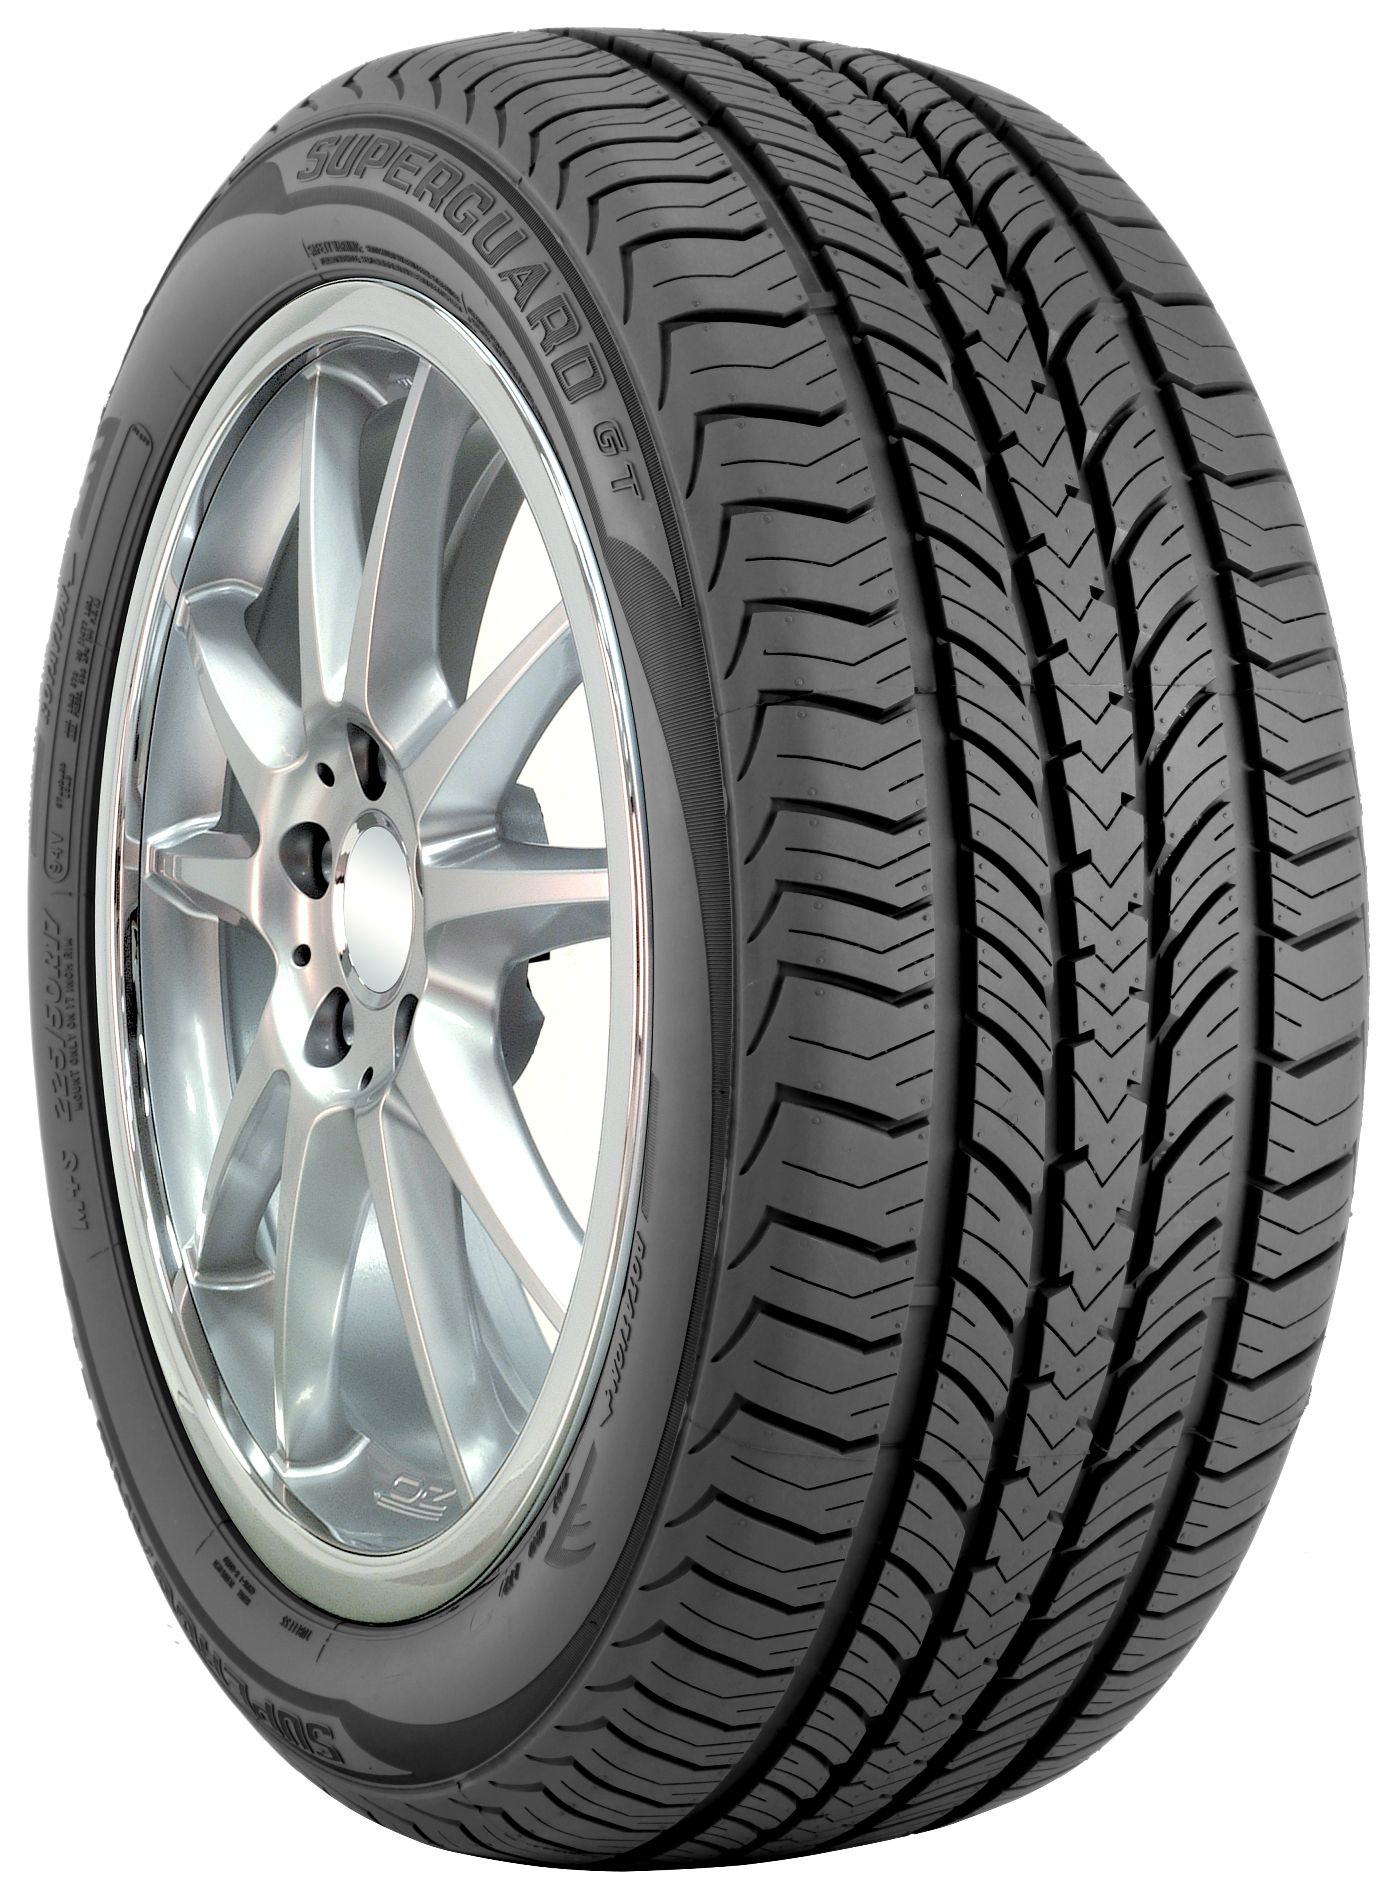 GT - 215/55R16 93H BW - All Season Tire